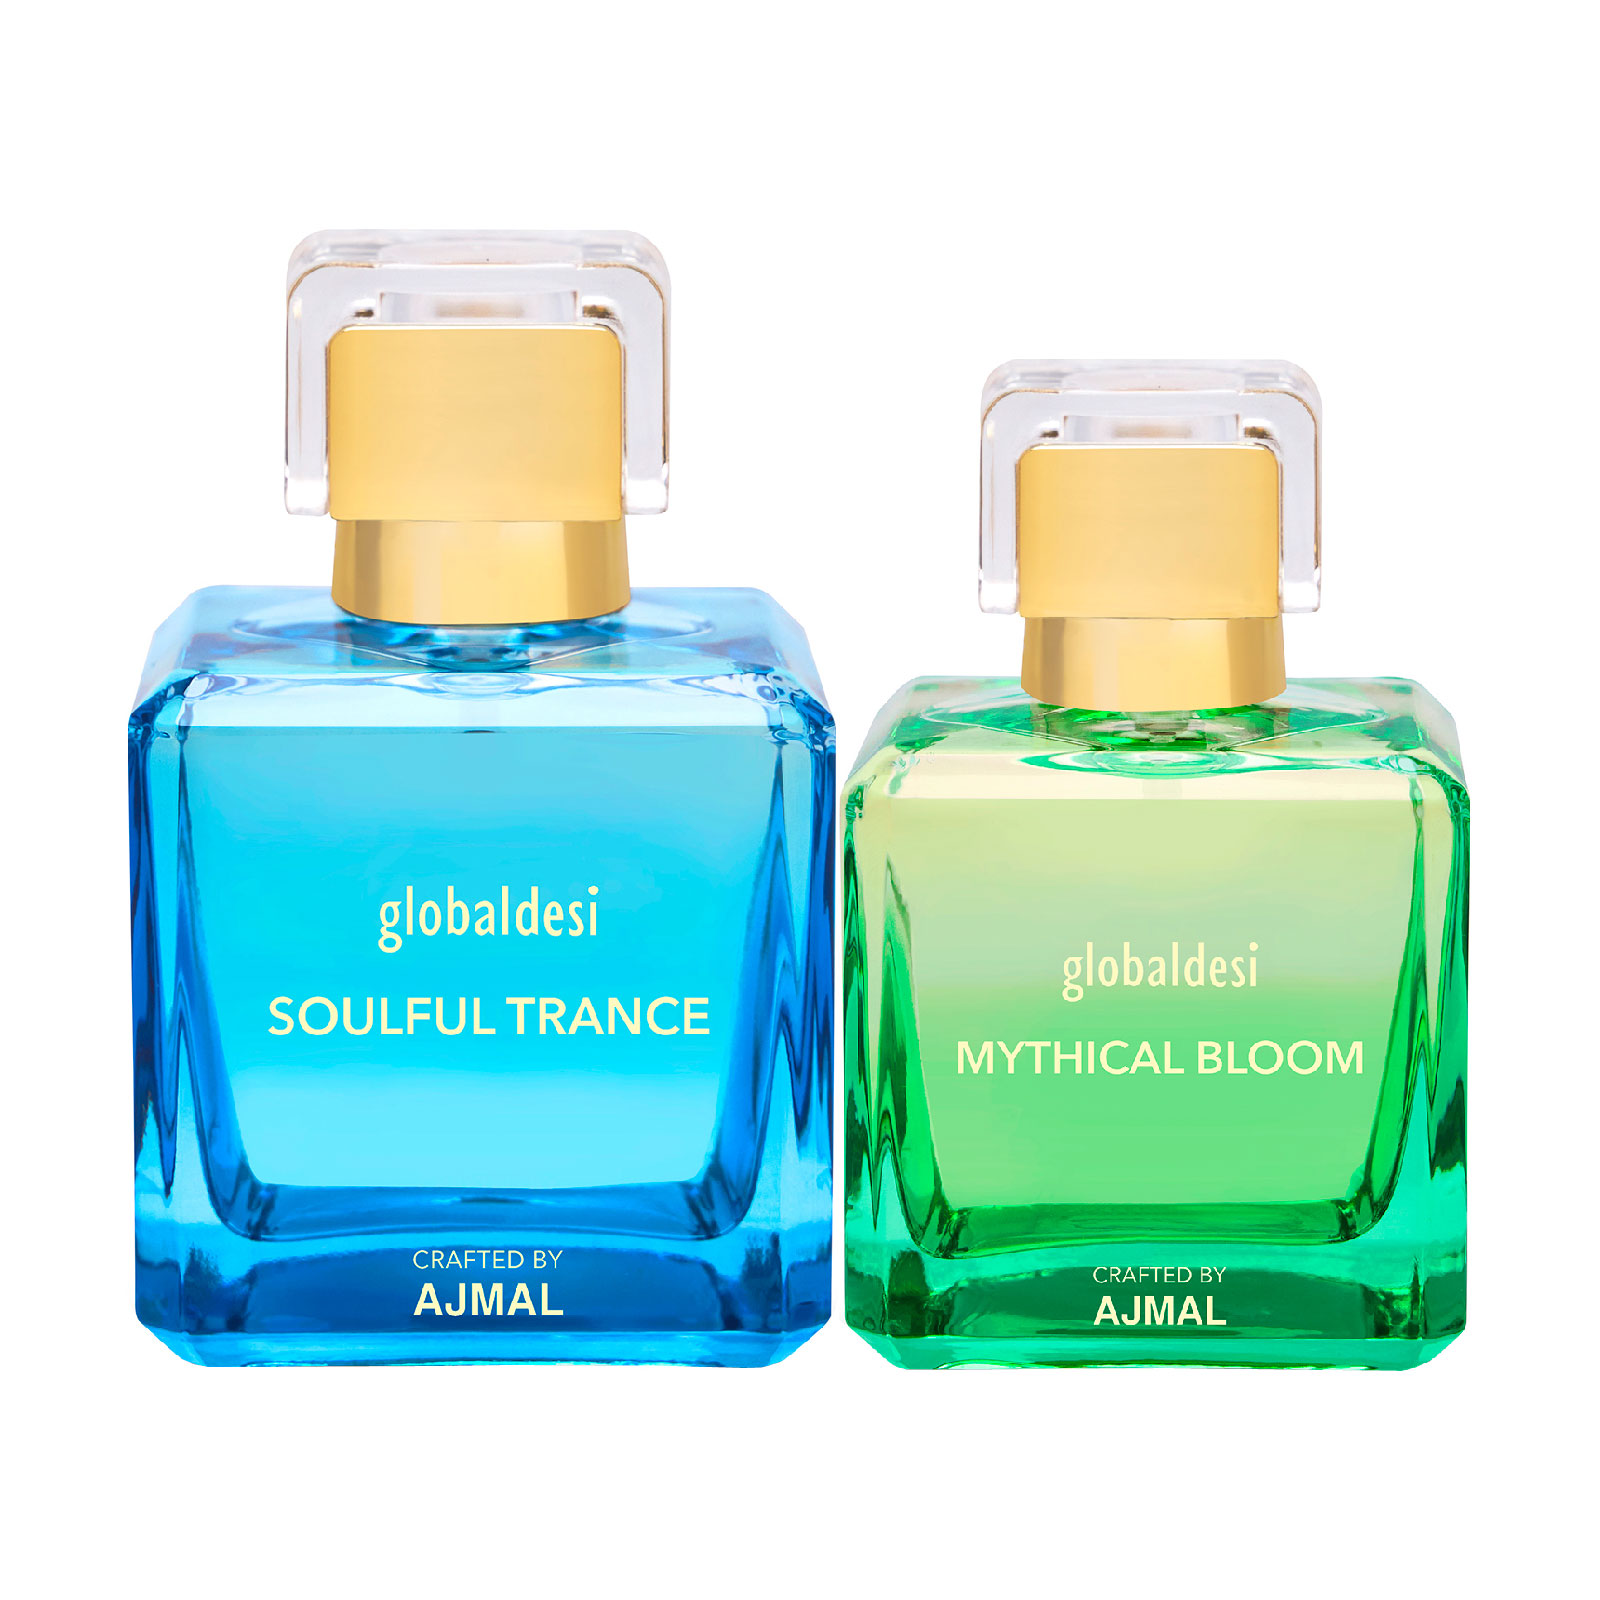 Global Desi Crafted By Ajmal | Global Desi Soulful Trance 100ML & Mythical Bloom 50ML Eau De Parfum for Women Crafted by Ajmal + 2 Parfum Testers